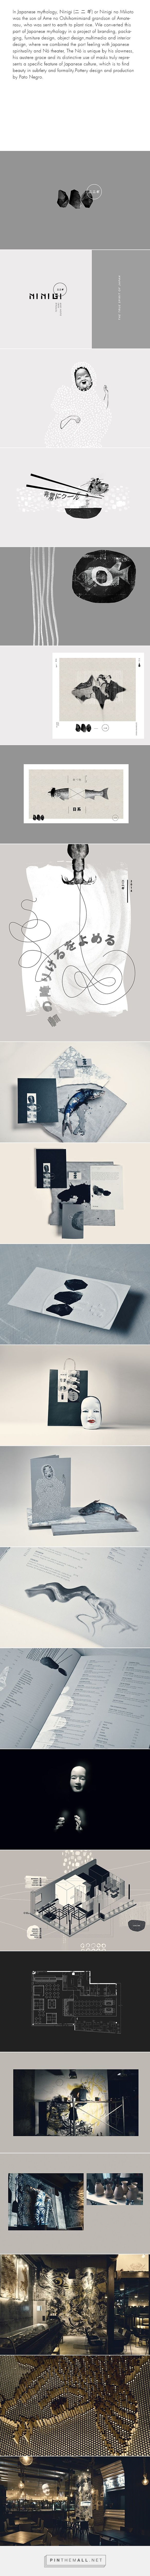 Ninigi identity packaging branding on Behance by yy curated by Packaging Diva PD This pin is long but it's worth every frame created via https://www.behance.net/gallery/23232485/Ninigi